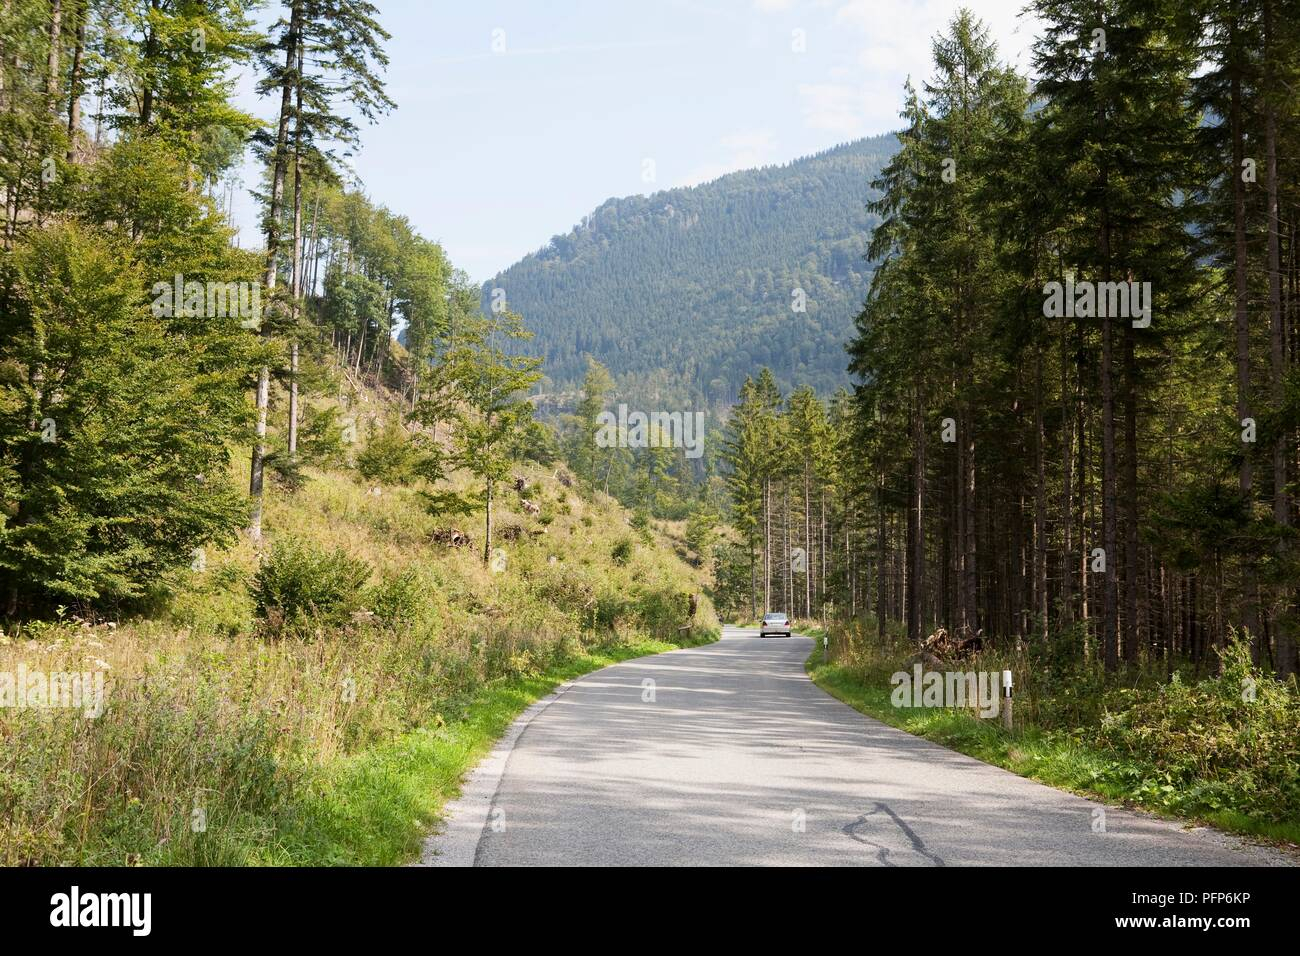 Germany, Bavaria (Bayern) state, Bayrischzell area, car in distance on road through forested area - Stock Image